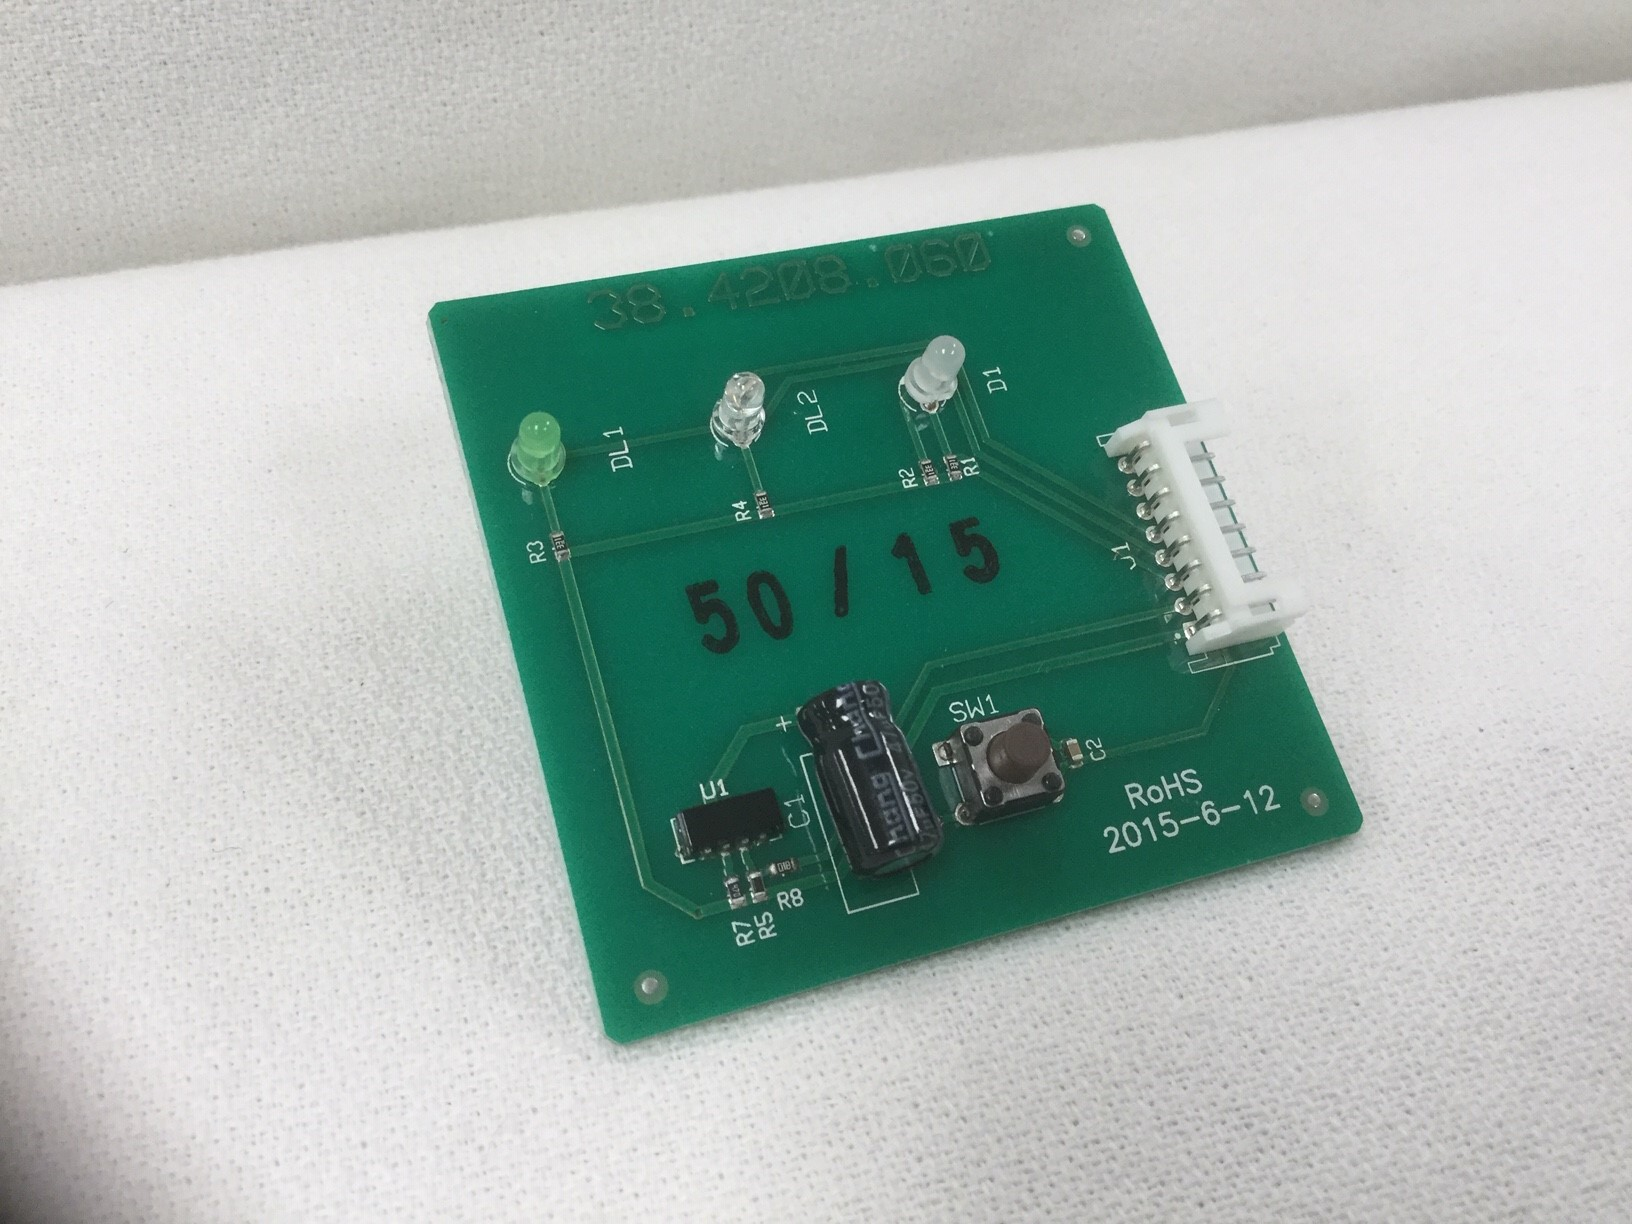 Circuit board, iSeries MMI